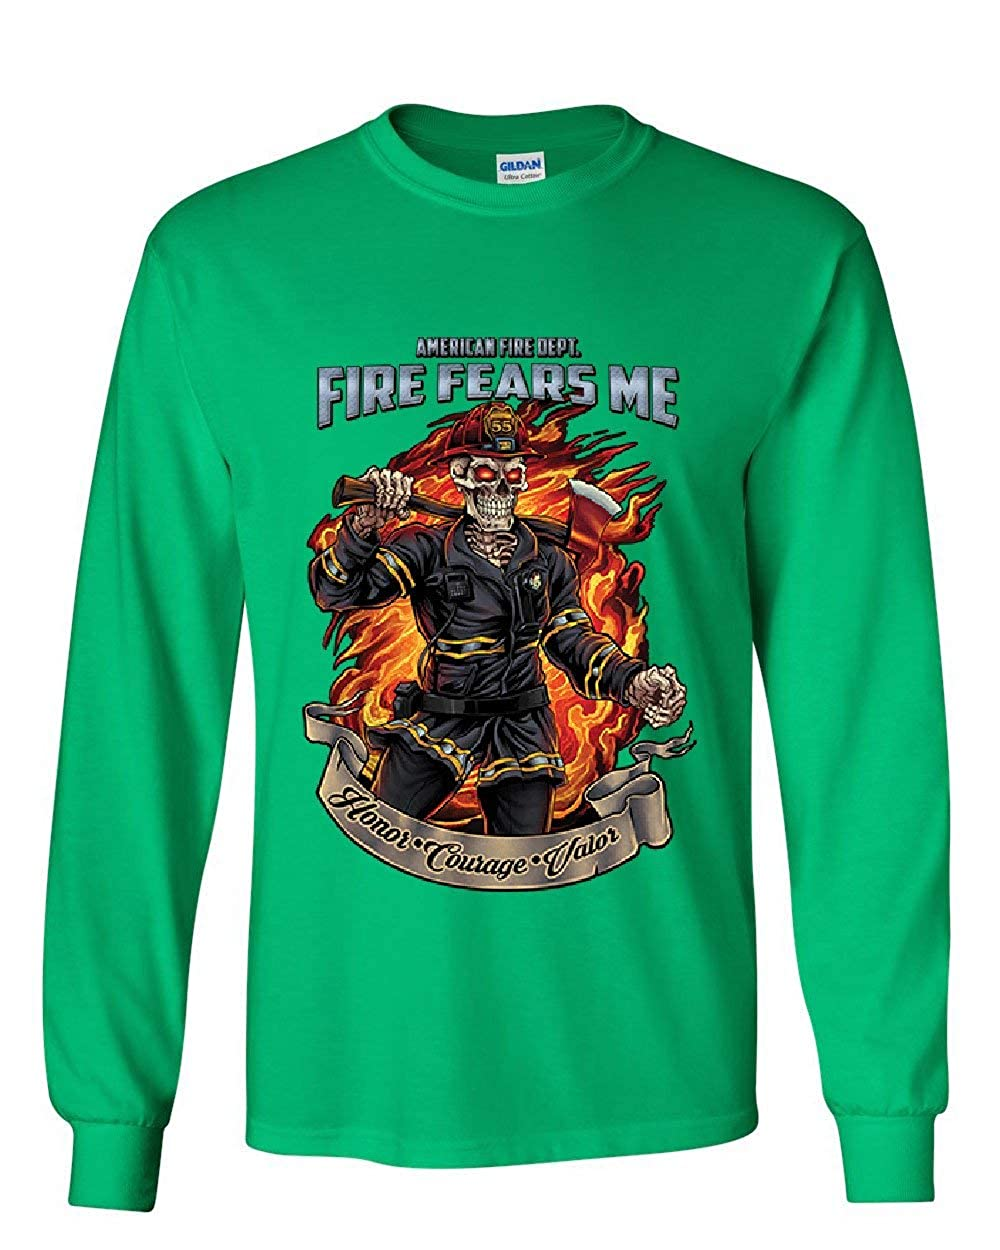 Honor Courage Valor Tee Fire Fears Me Long Sleeve T-Shirt Firefighter Fire Dept